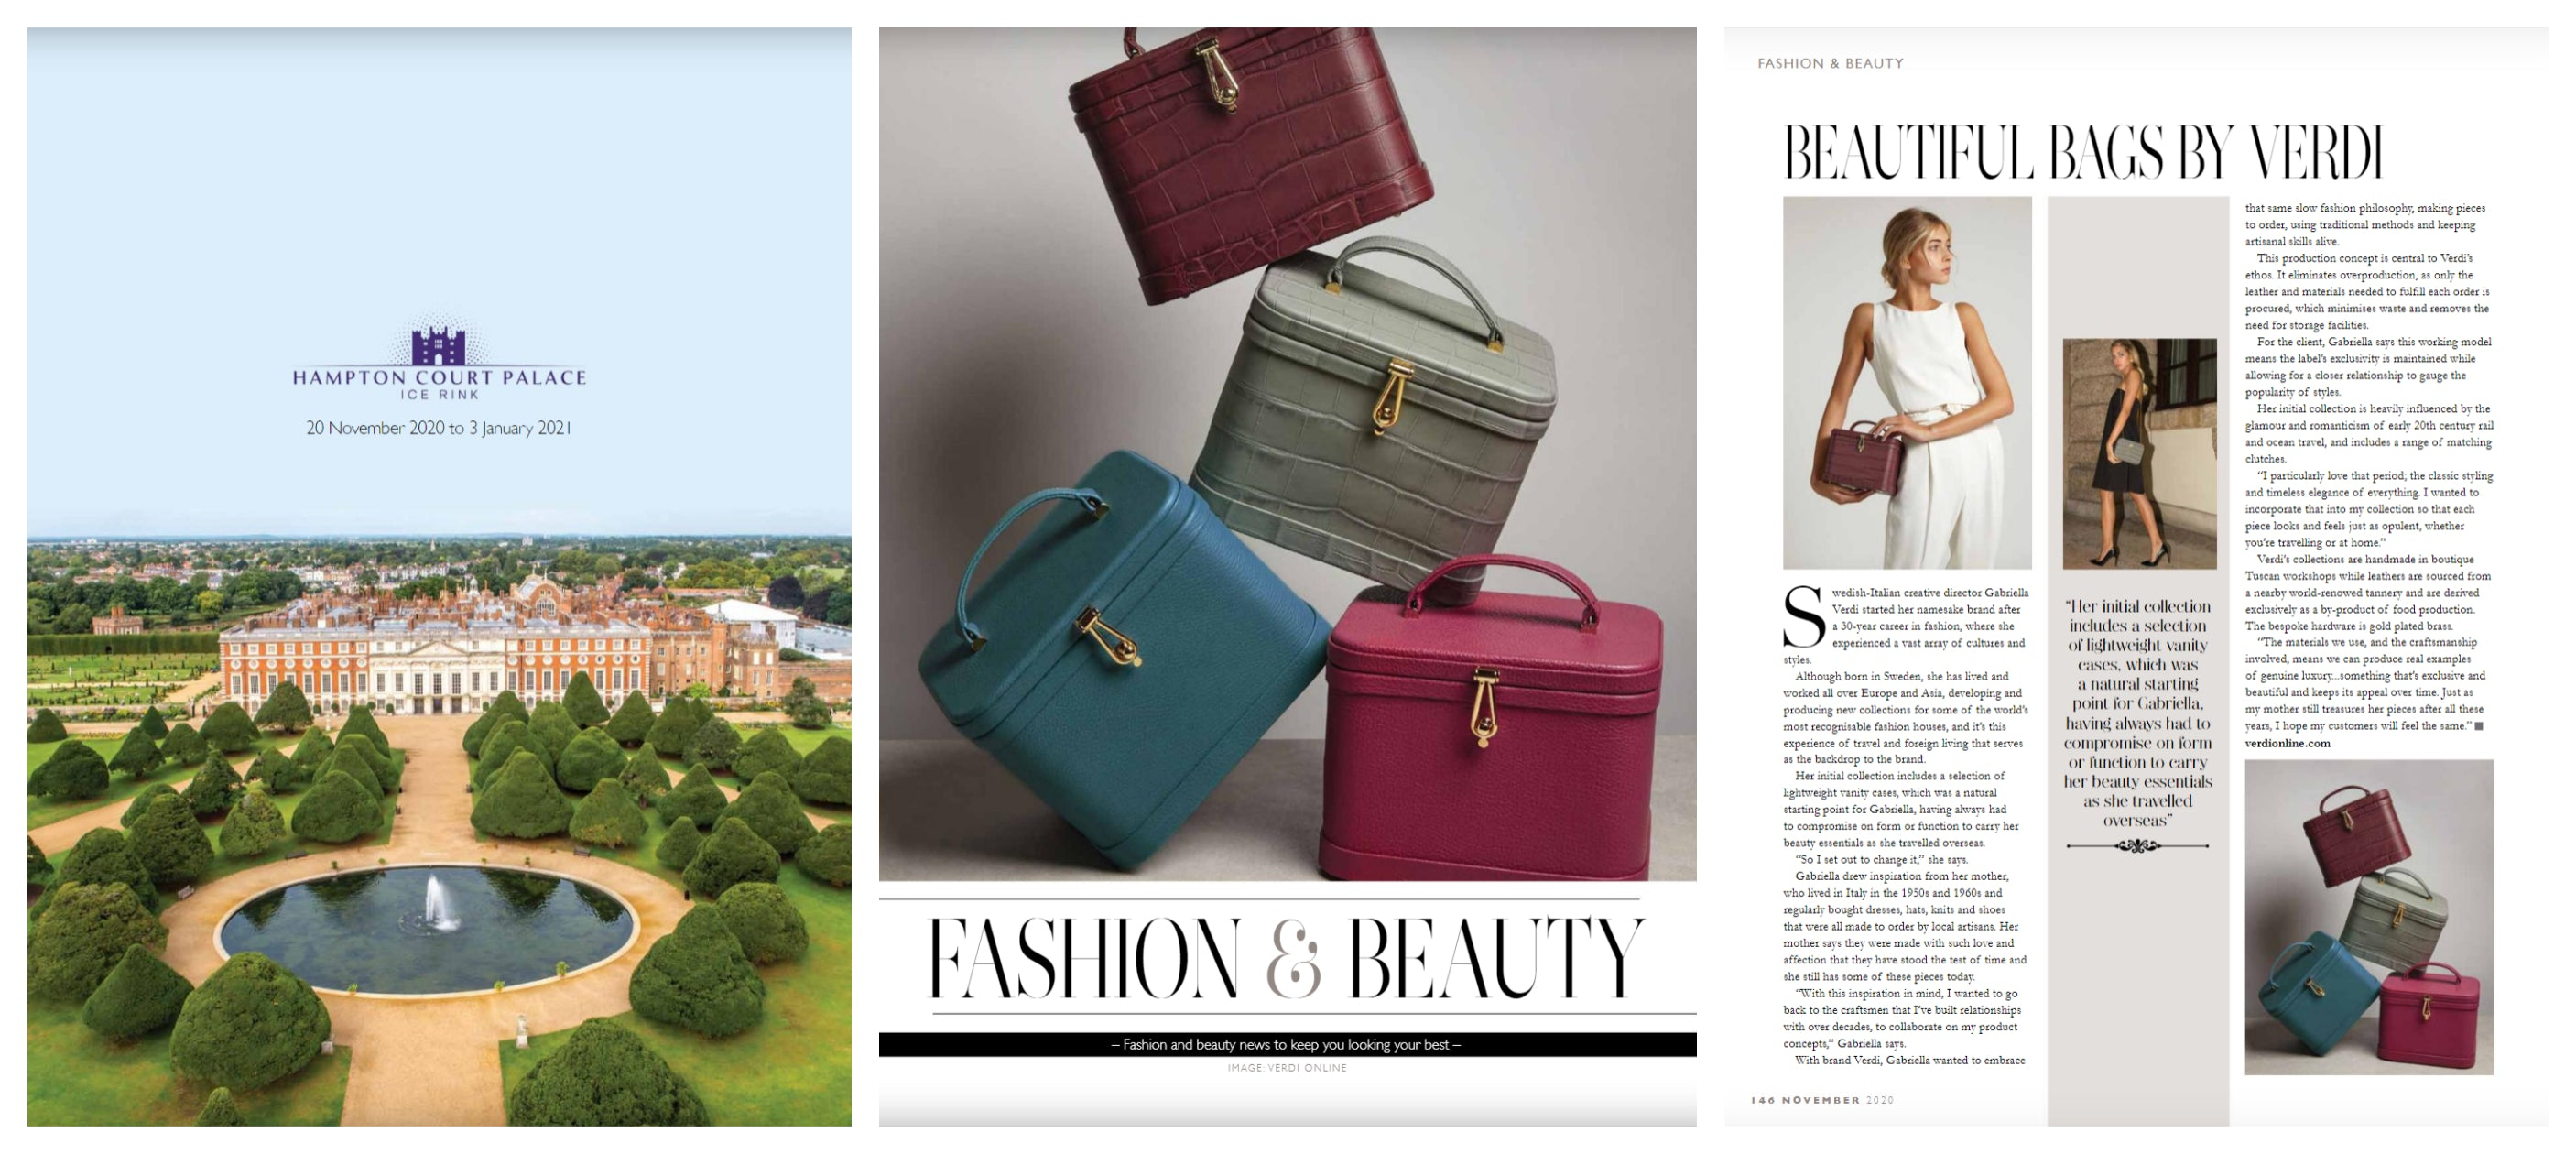 Atelier Verdi Vanity Cases and Brand Editorial in London Life Magazine November 2020